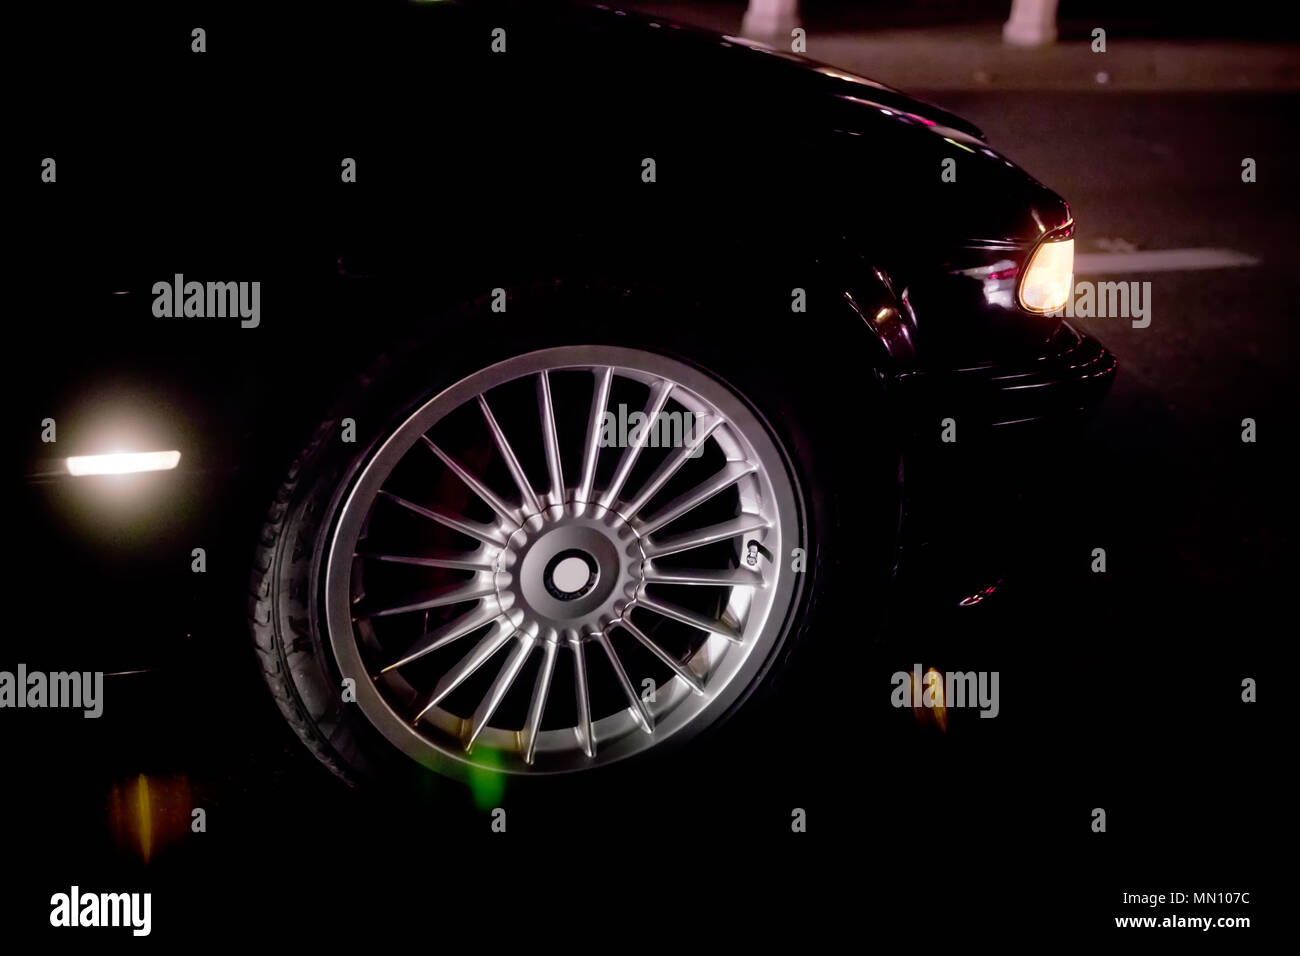 A car burnout at a drag racing track. Car tire Night on the way. Car tires in automobile . luxury car wheel close-up . fuel efficient car tires on black background. - Stock Image